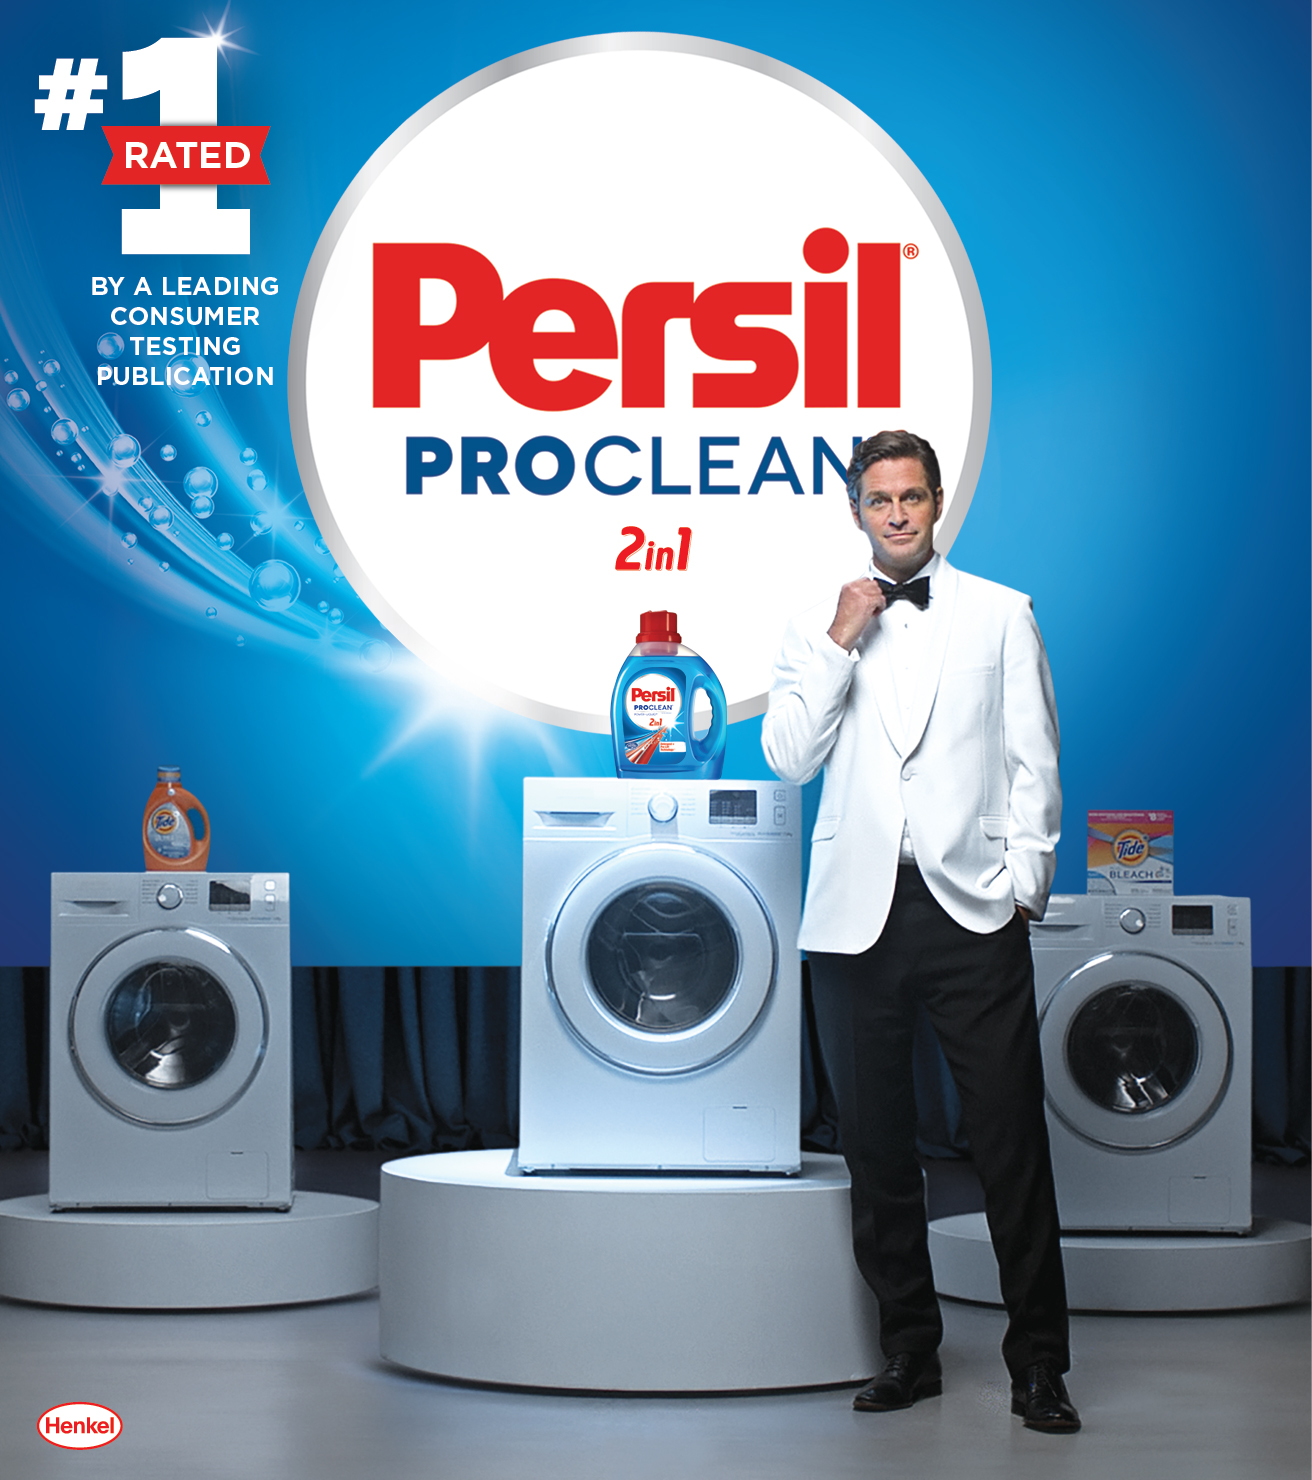 A leading consumer testing publication recently tested the top laundry detergent brands in America. Persil ProClean 2in1 didn't only beat Tide, it beat every single detergent tested.